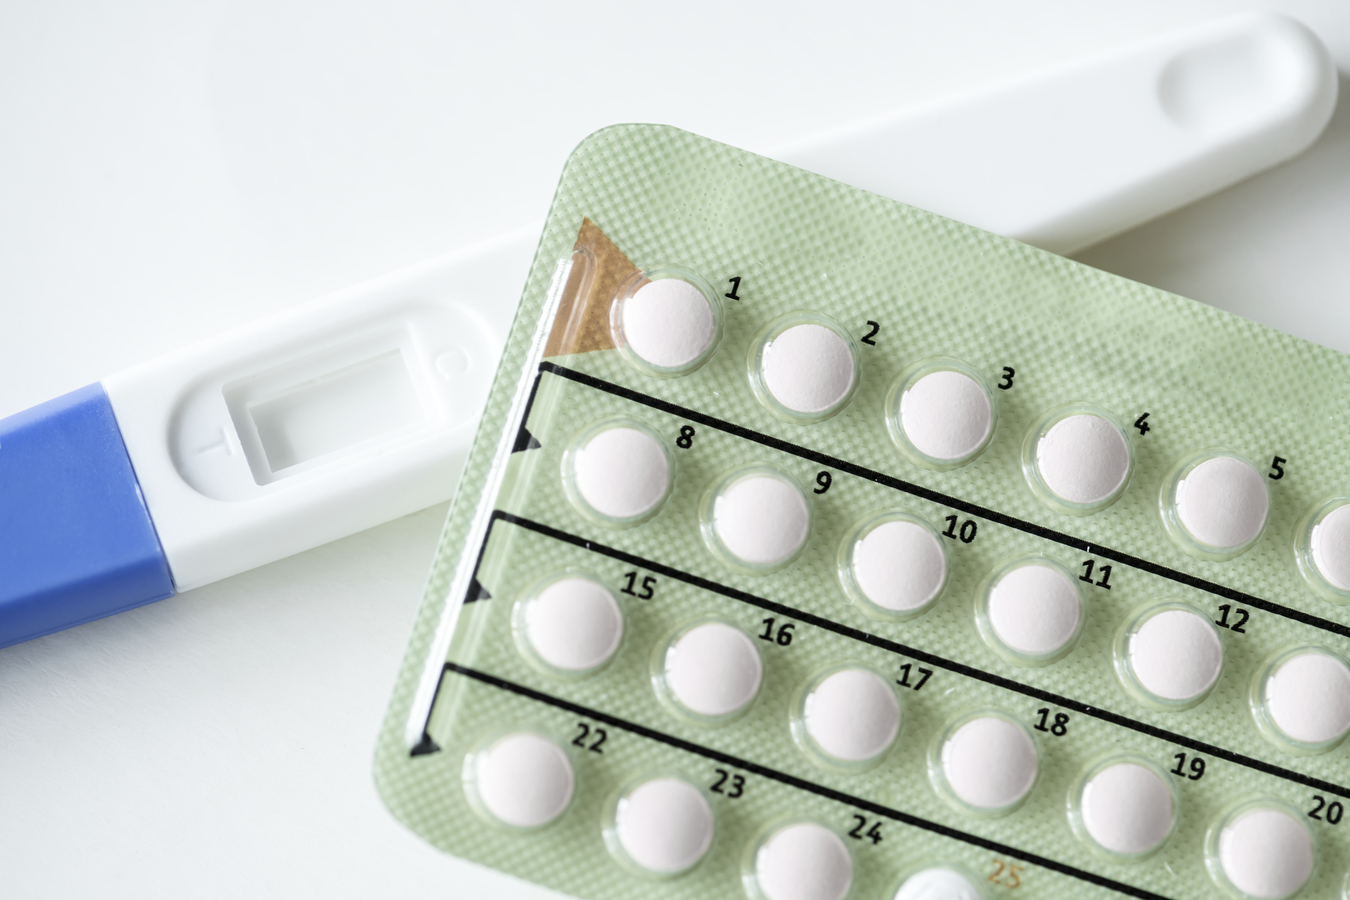 contraceptive pill prescription in Manhattan